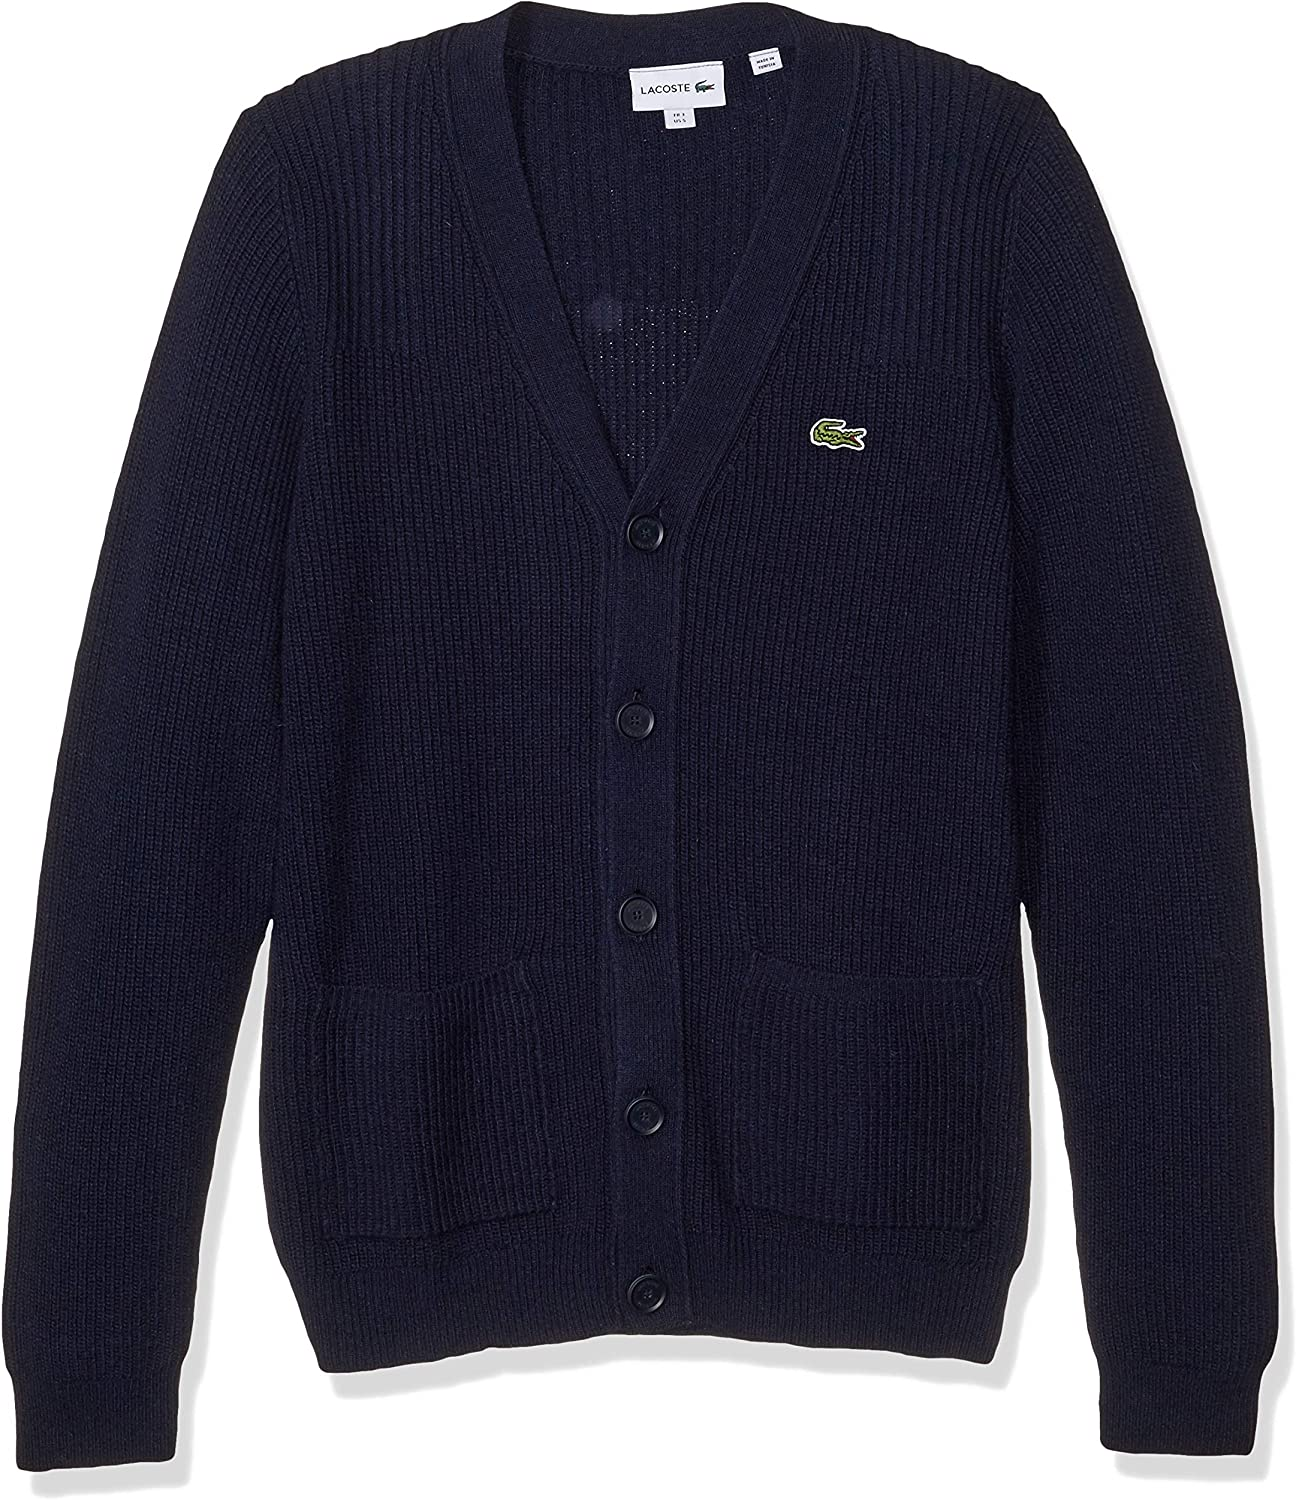 Lacoste Mens Long Sleeve Knit Effect Classic Sweater Cardigan Sweater